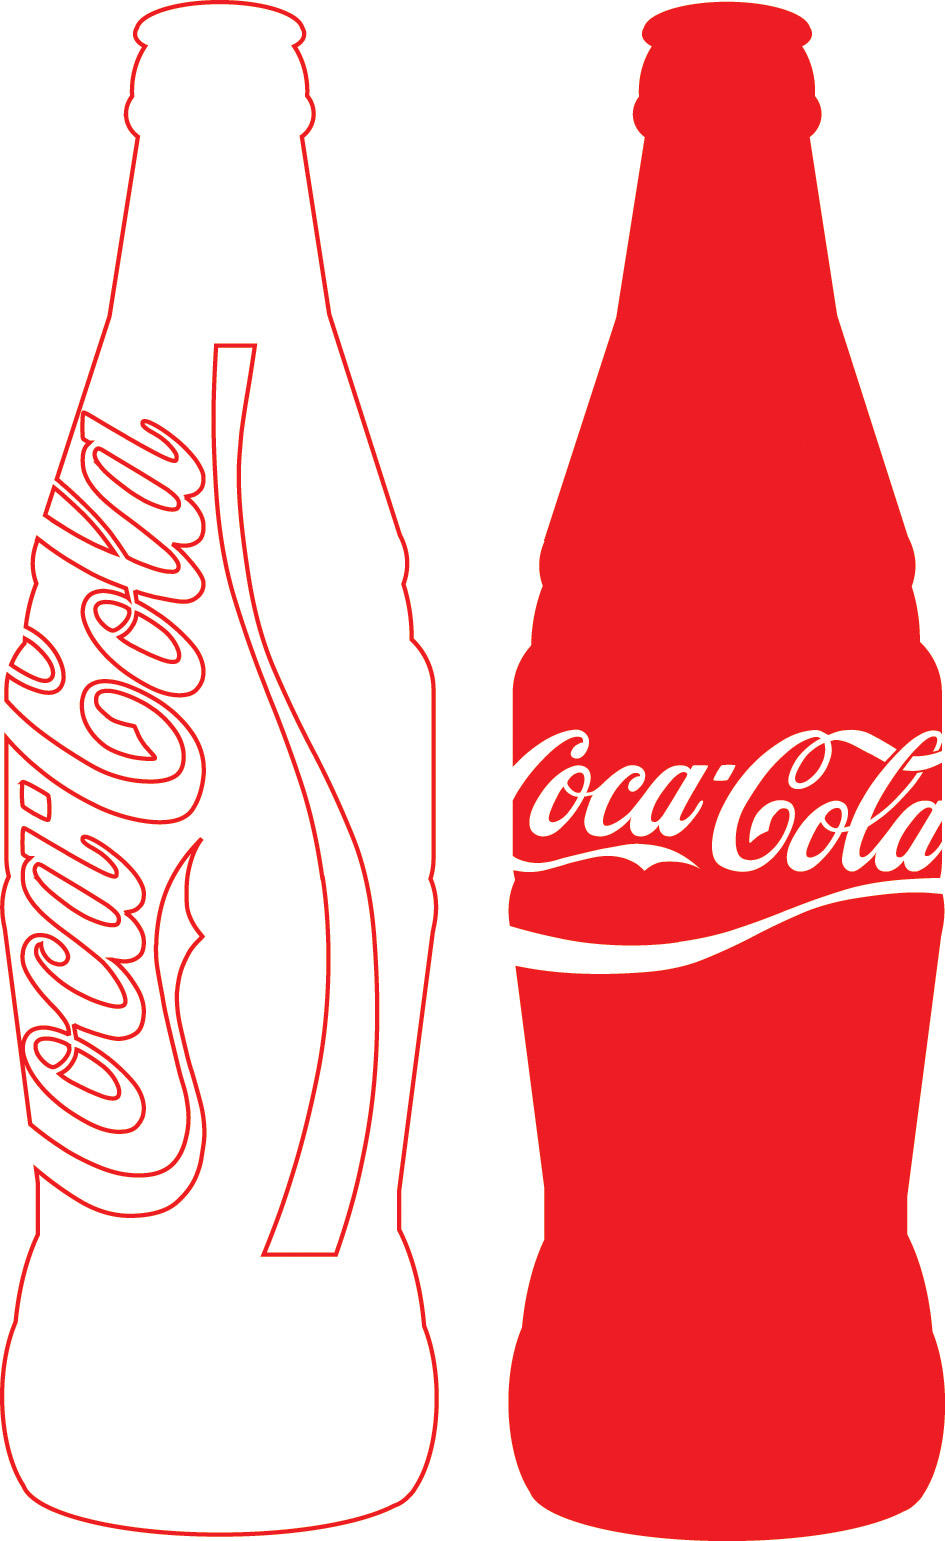 coca cola outline - the coca-cola company the coca-cola company is the largest manufacturer, distributor and marketer of nonalcoholic beverage concentrates and syrups in the world coca-cola's headquarters are in atlanta, georgia, in the united states of america.